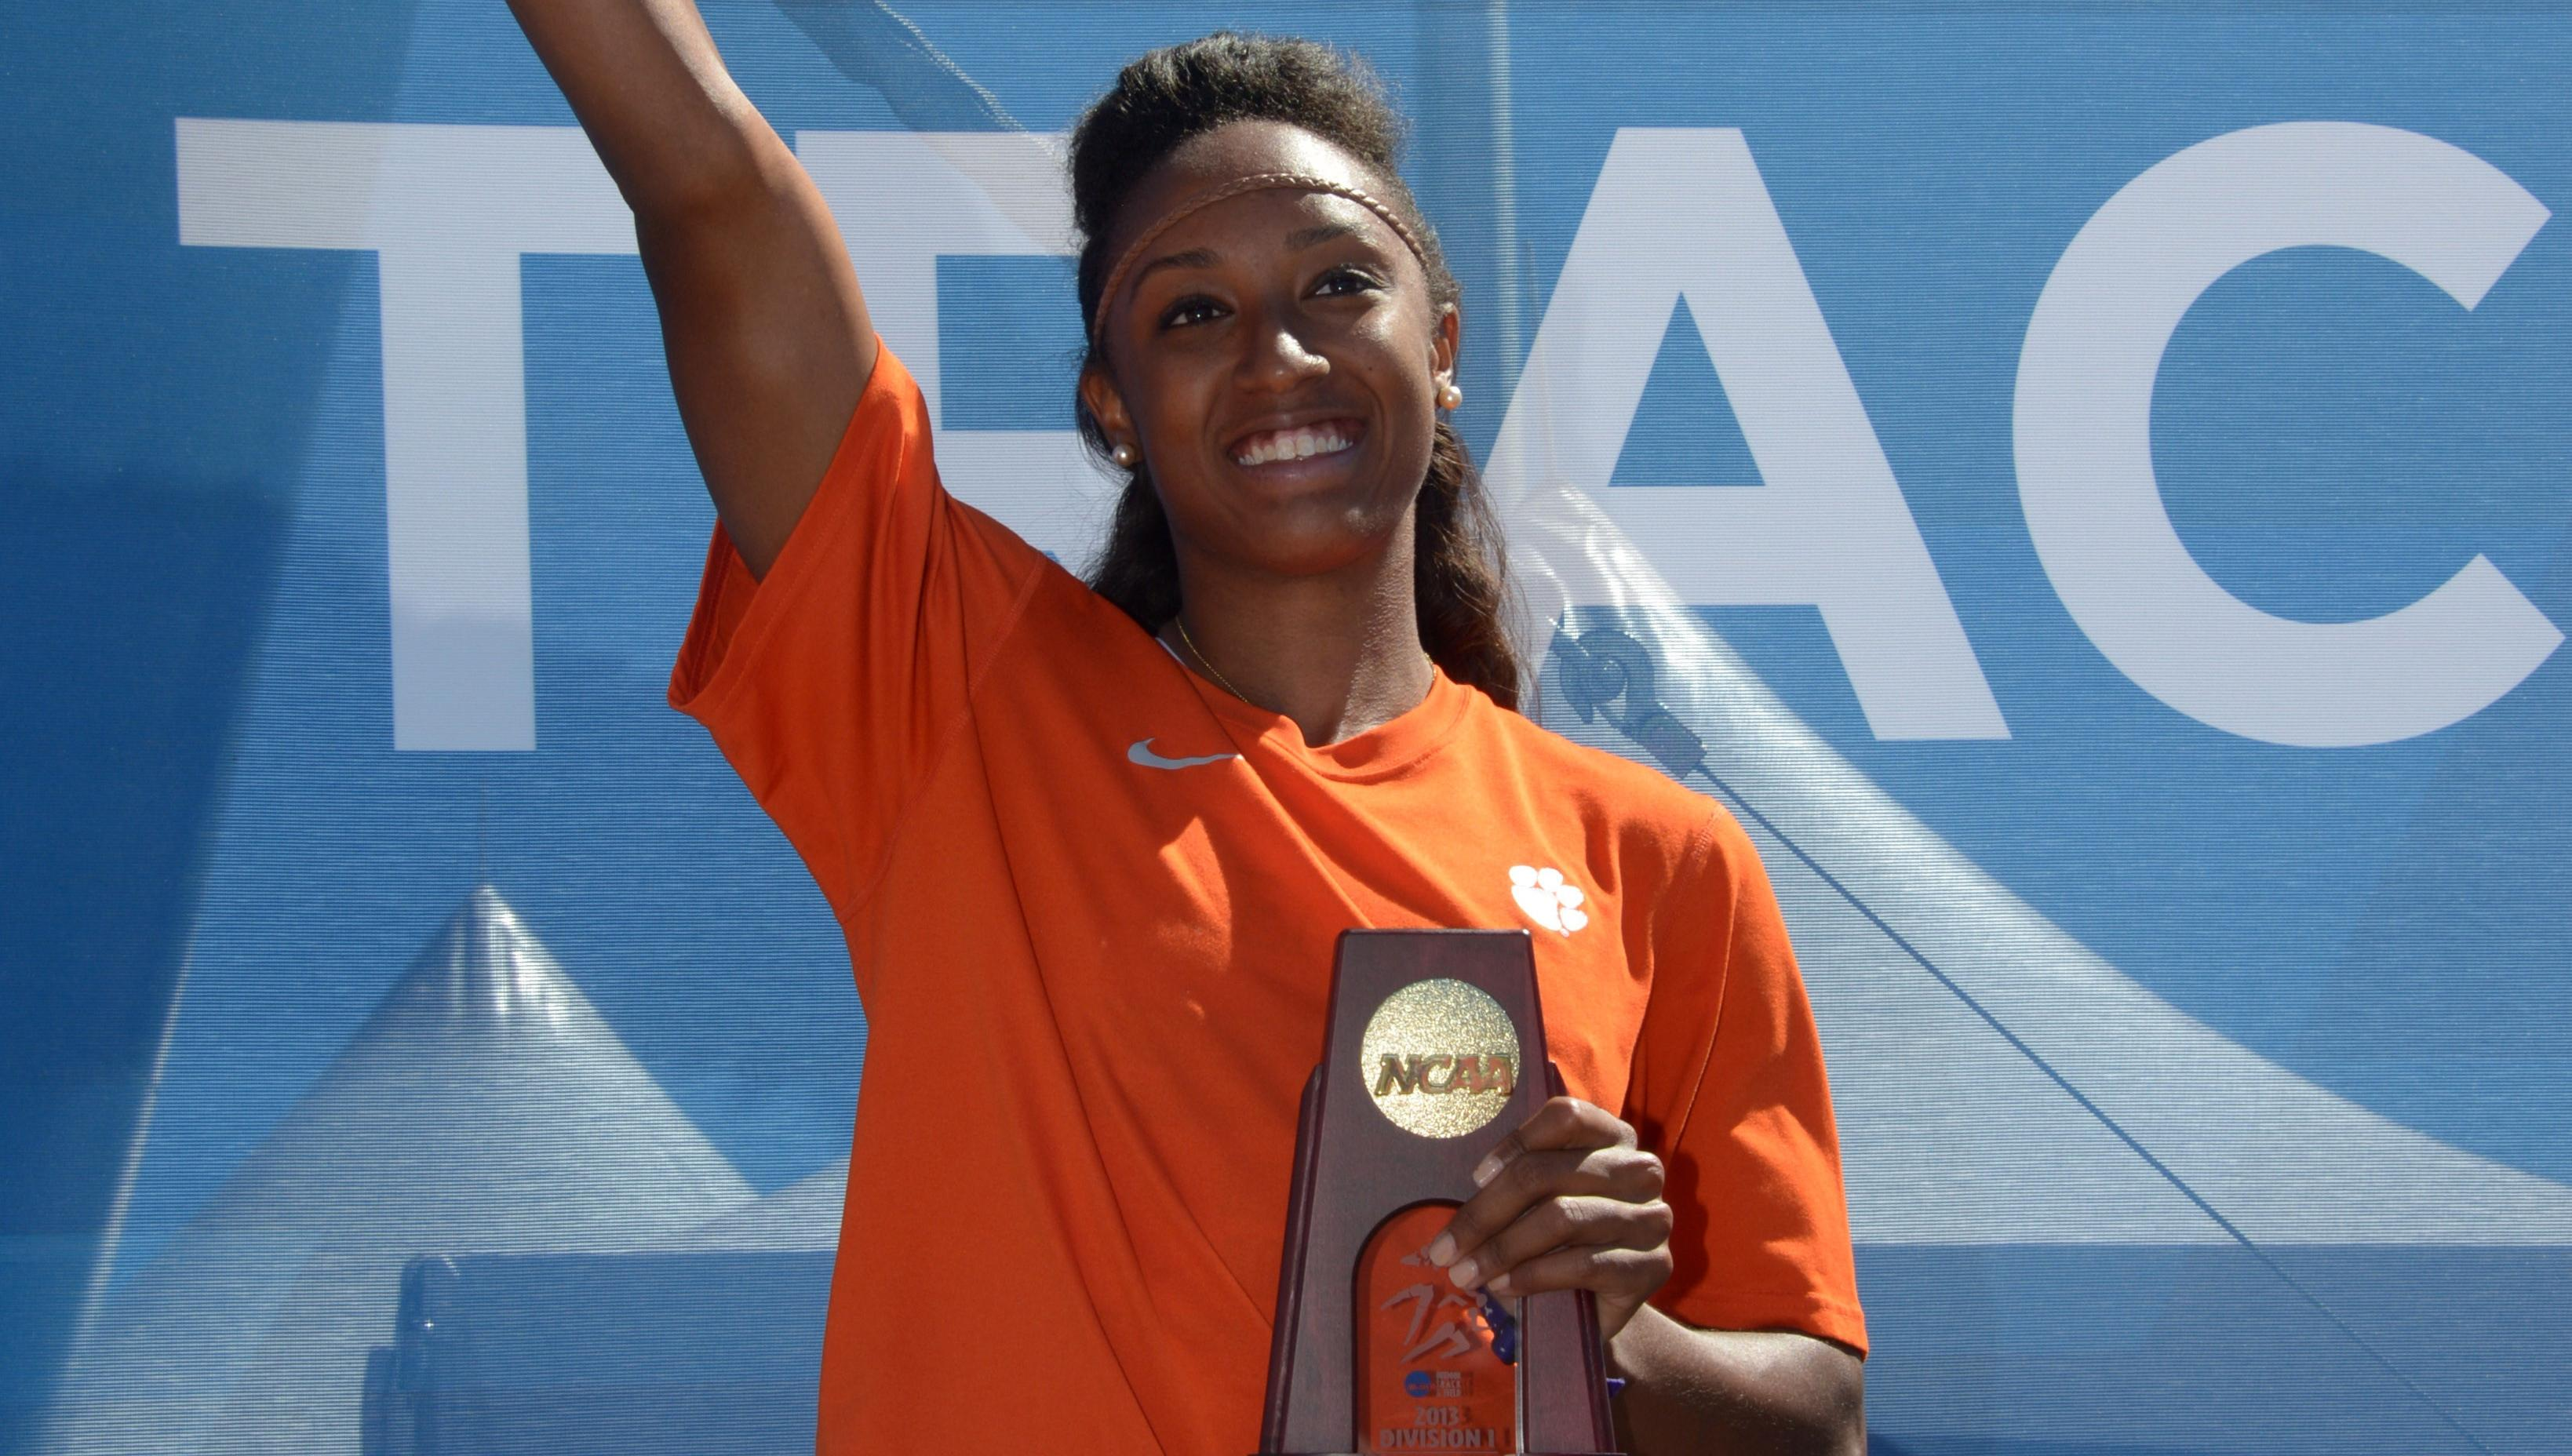 Rollins Named USTFCCCA Women's National Track Athlete of the Year